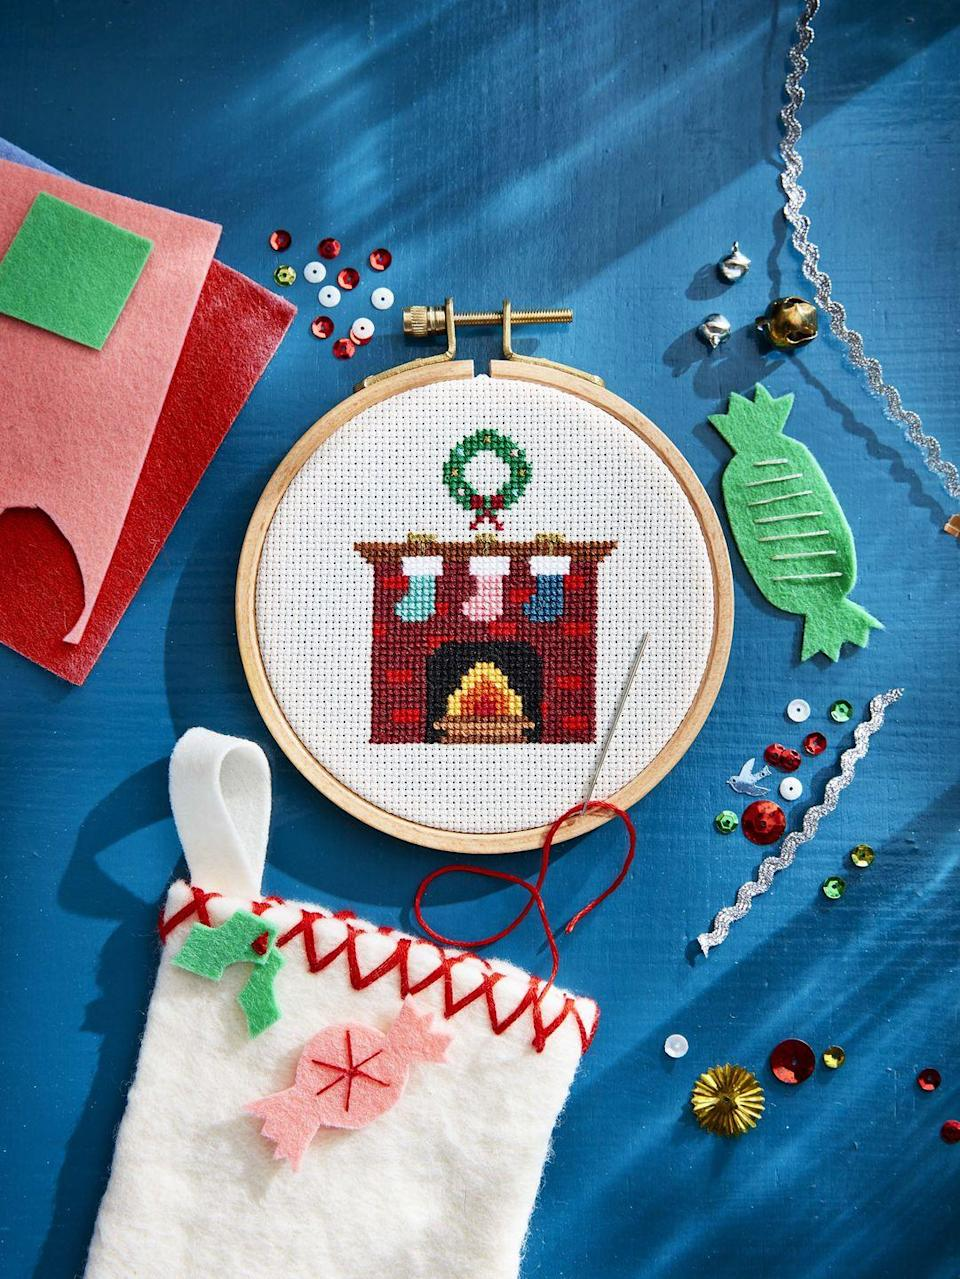 """<p>If you're crafty, now's the time to show it off! Stitch this adorable Christmas motif, and let your recipient share your handiwork with the world year after year after year.</p><p><strong><a href=""""https://www.countryliving.com/diy-crafts/a6380/cross-stitch/"""" rel=""""nofollow noopener"""" target=""""_blank"""" data-ylk=""""slk:Get the tutorial"""" class=""""link rapid-noclick-resp"""">Get the tutorial</a>.</strong></p><p><a class=""""link rapid-noclick-resp"""" href=""""https://www.amazon.com/Best-Sellers-Arts-Crafts-Sewing-Embroidery-Hoops/zgbs/arts-crafts/262621011?tag=syn-yahoo-20&ascsubtag=%5Bartid%7C10050.g.645%5Bsrc%7Cyahoo-us"""" rel=""""nofollow noopener"""" target=""""_blank"""" data-ylk=""""slk:SHOP EMBROIDERY HOOPS"""">SHOP EMBROIDERY HOOPS</a></p>"""